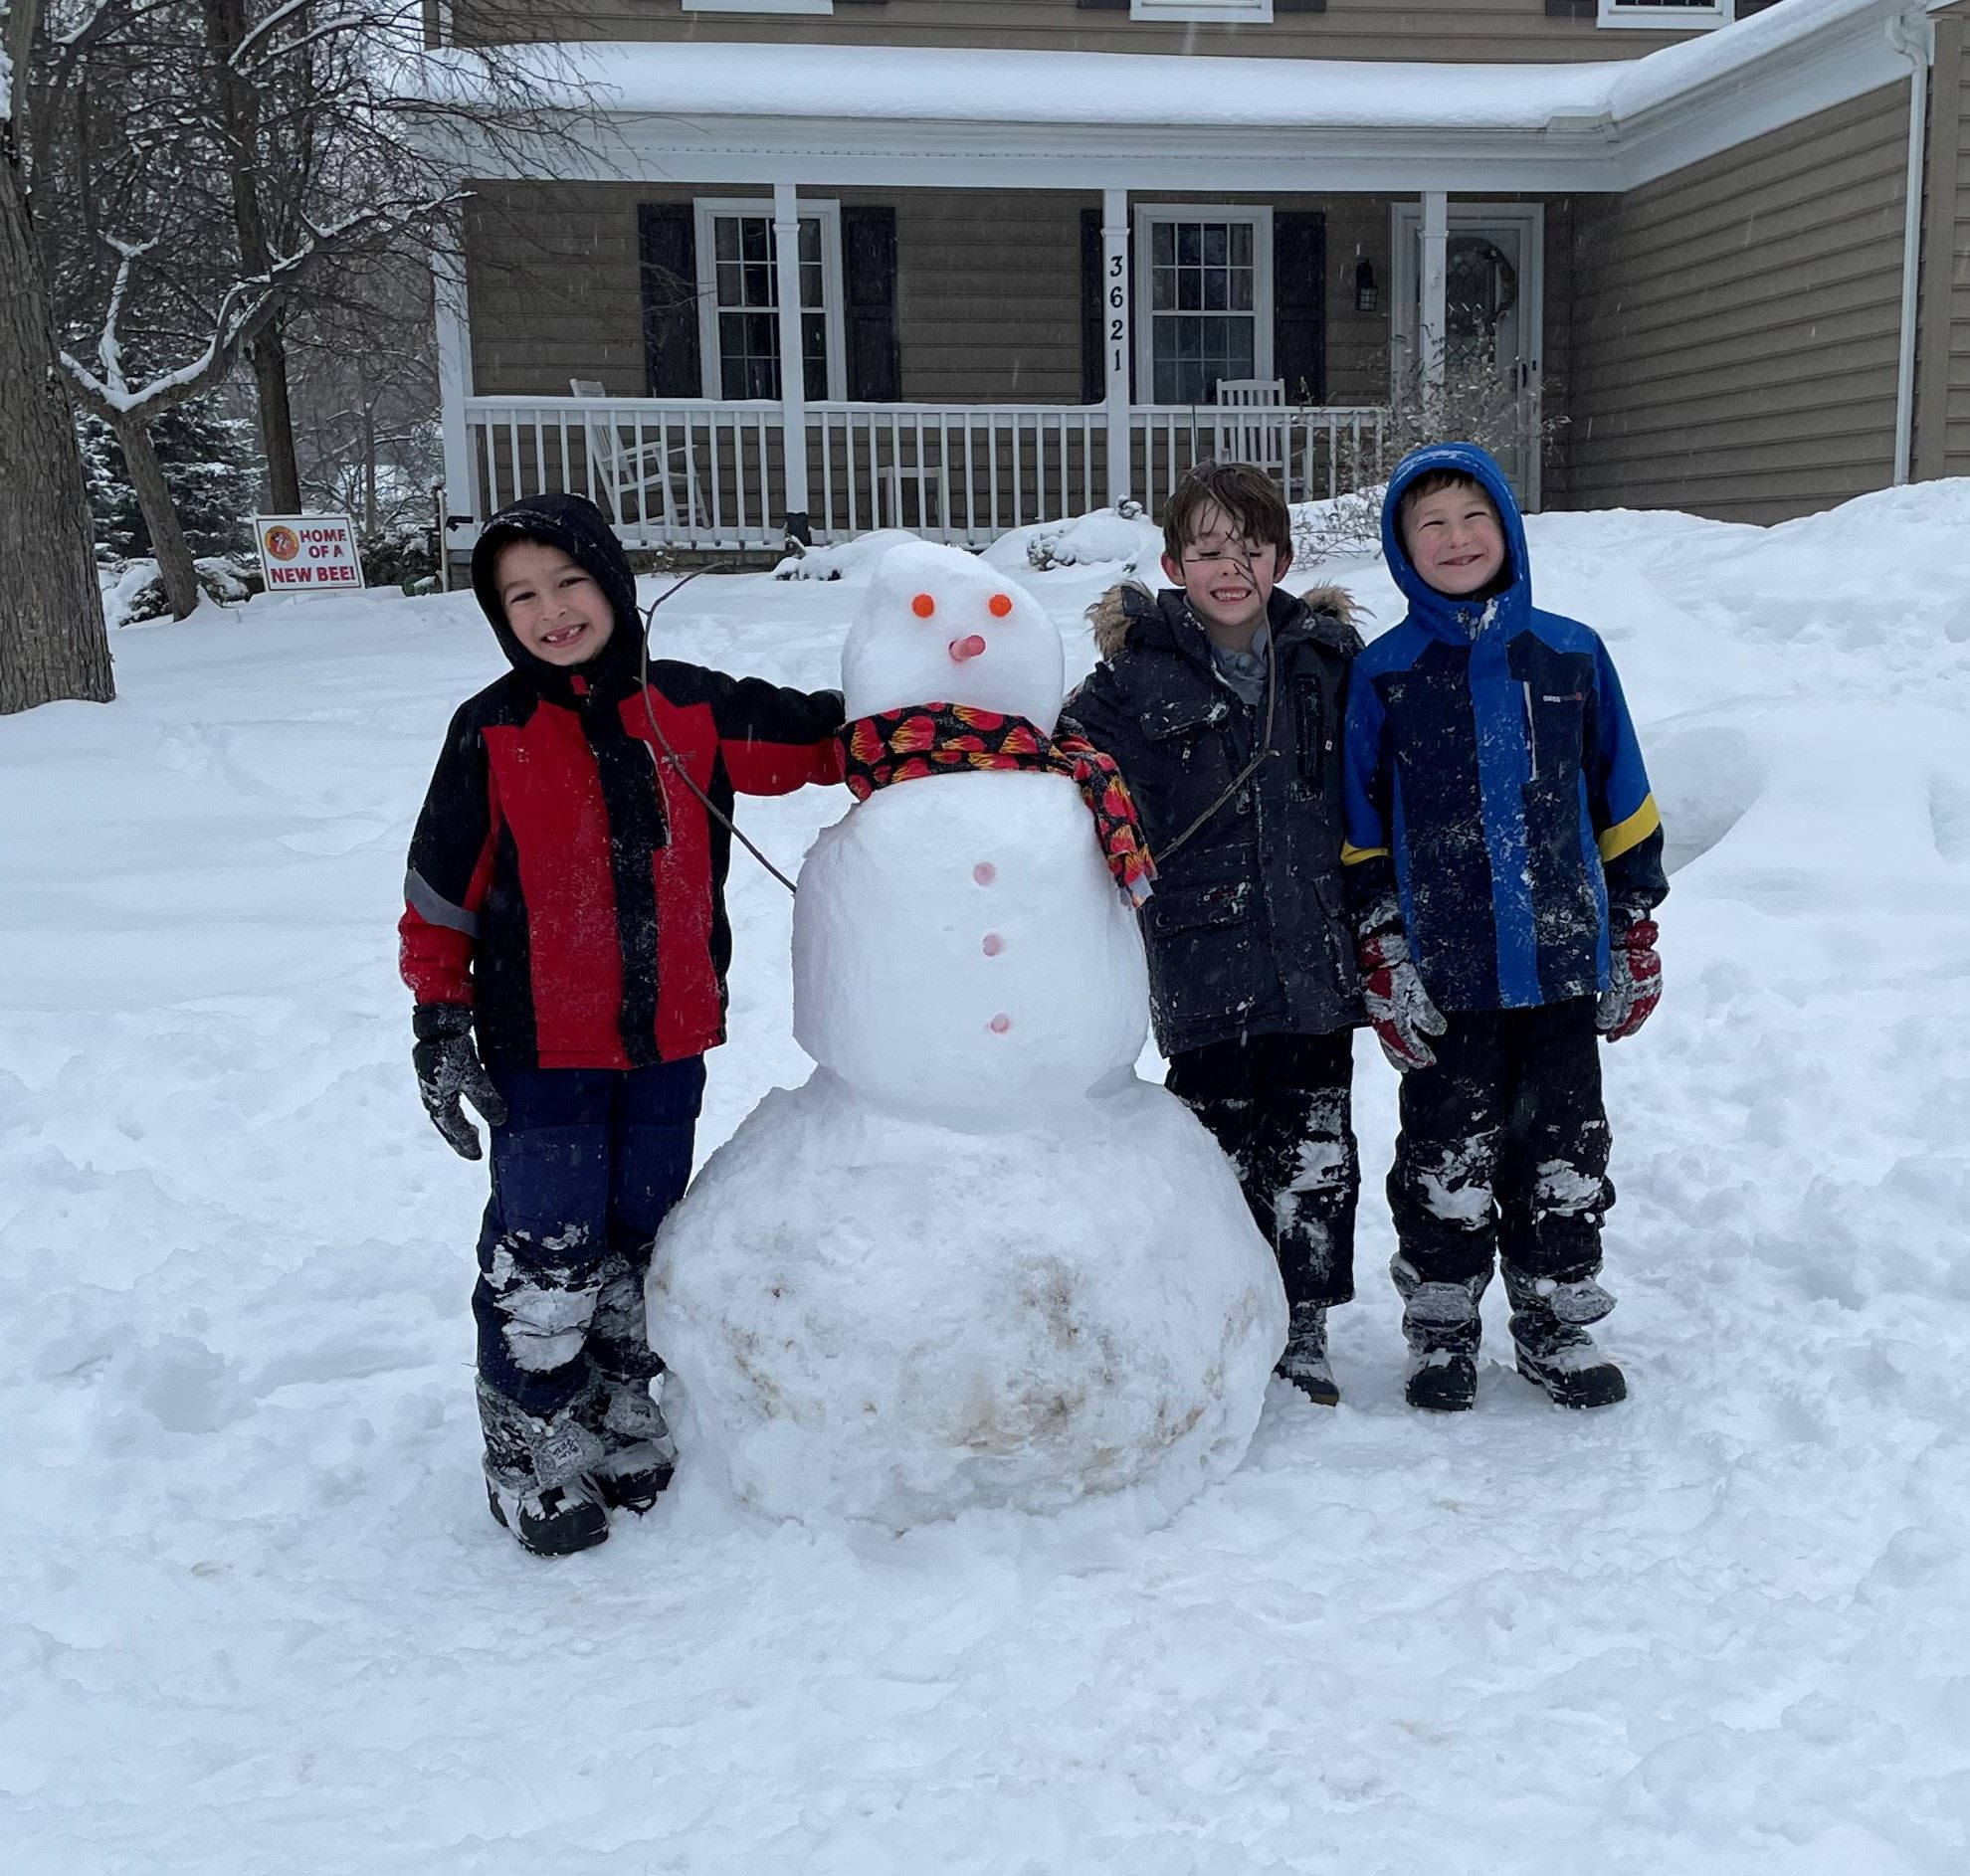 Snowman with three boys